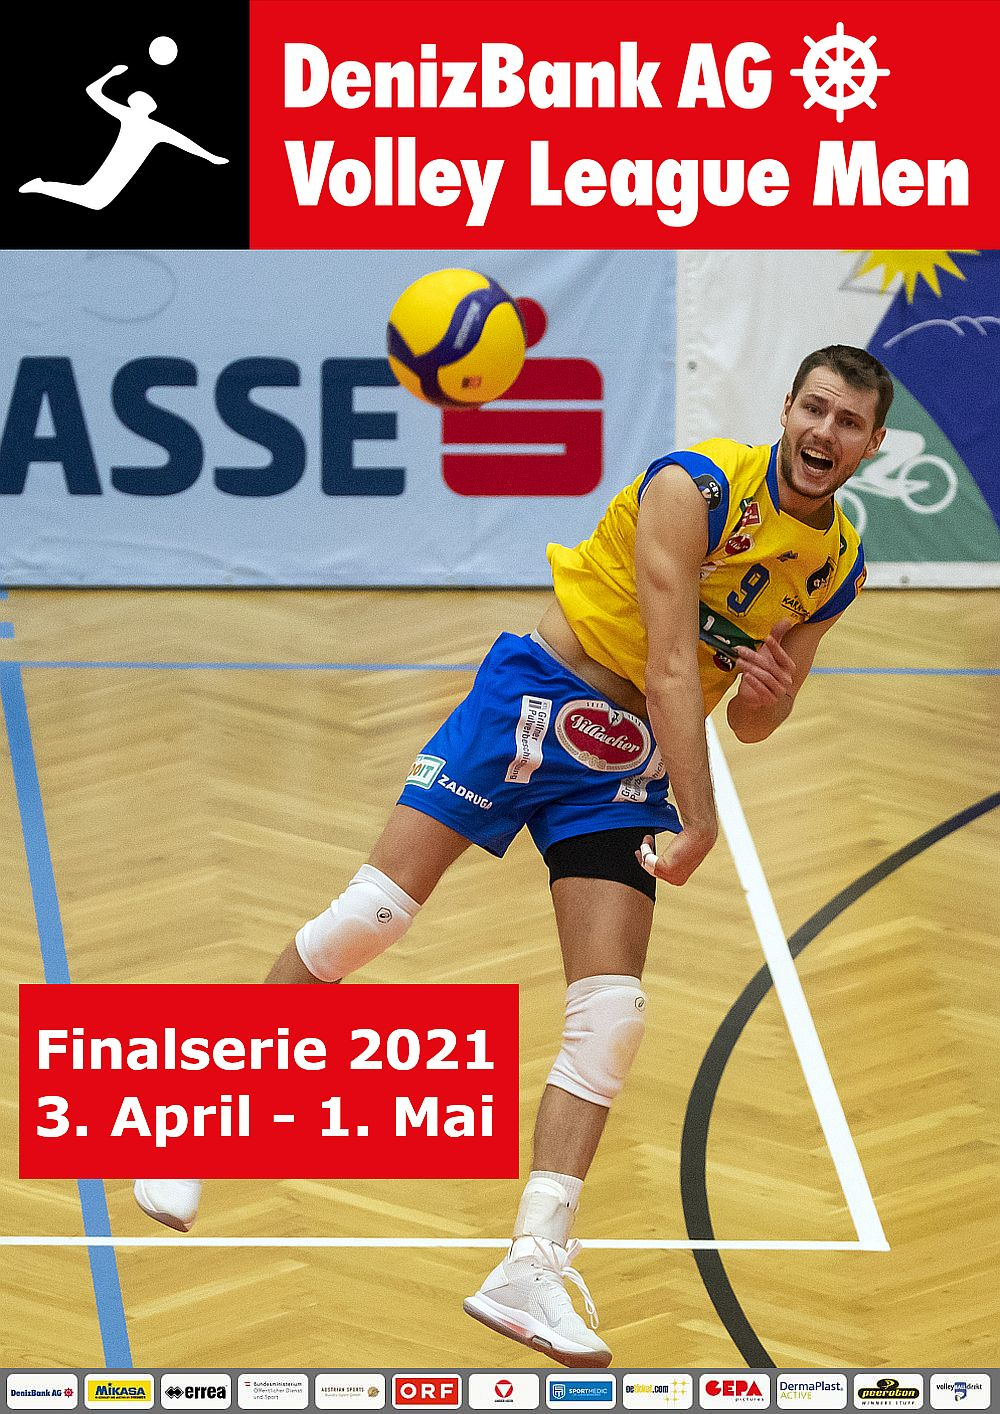 DenizBank AG VL Men-Finalserie